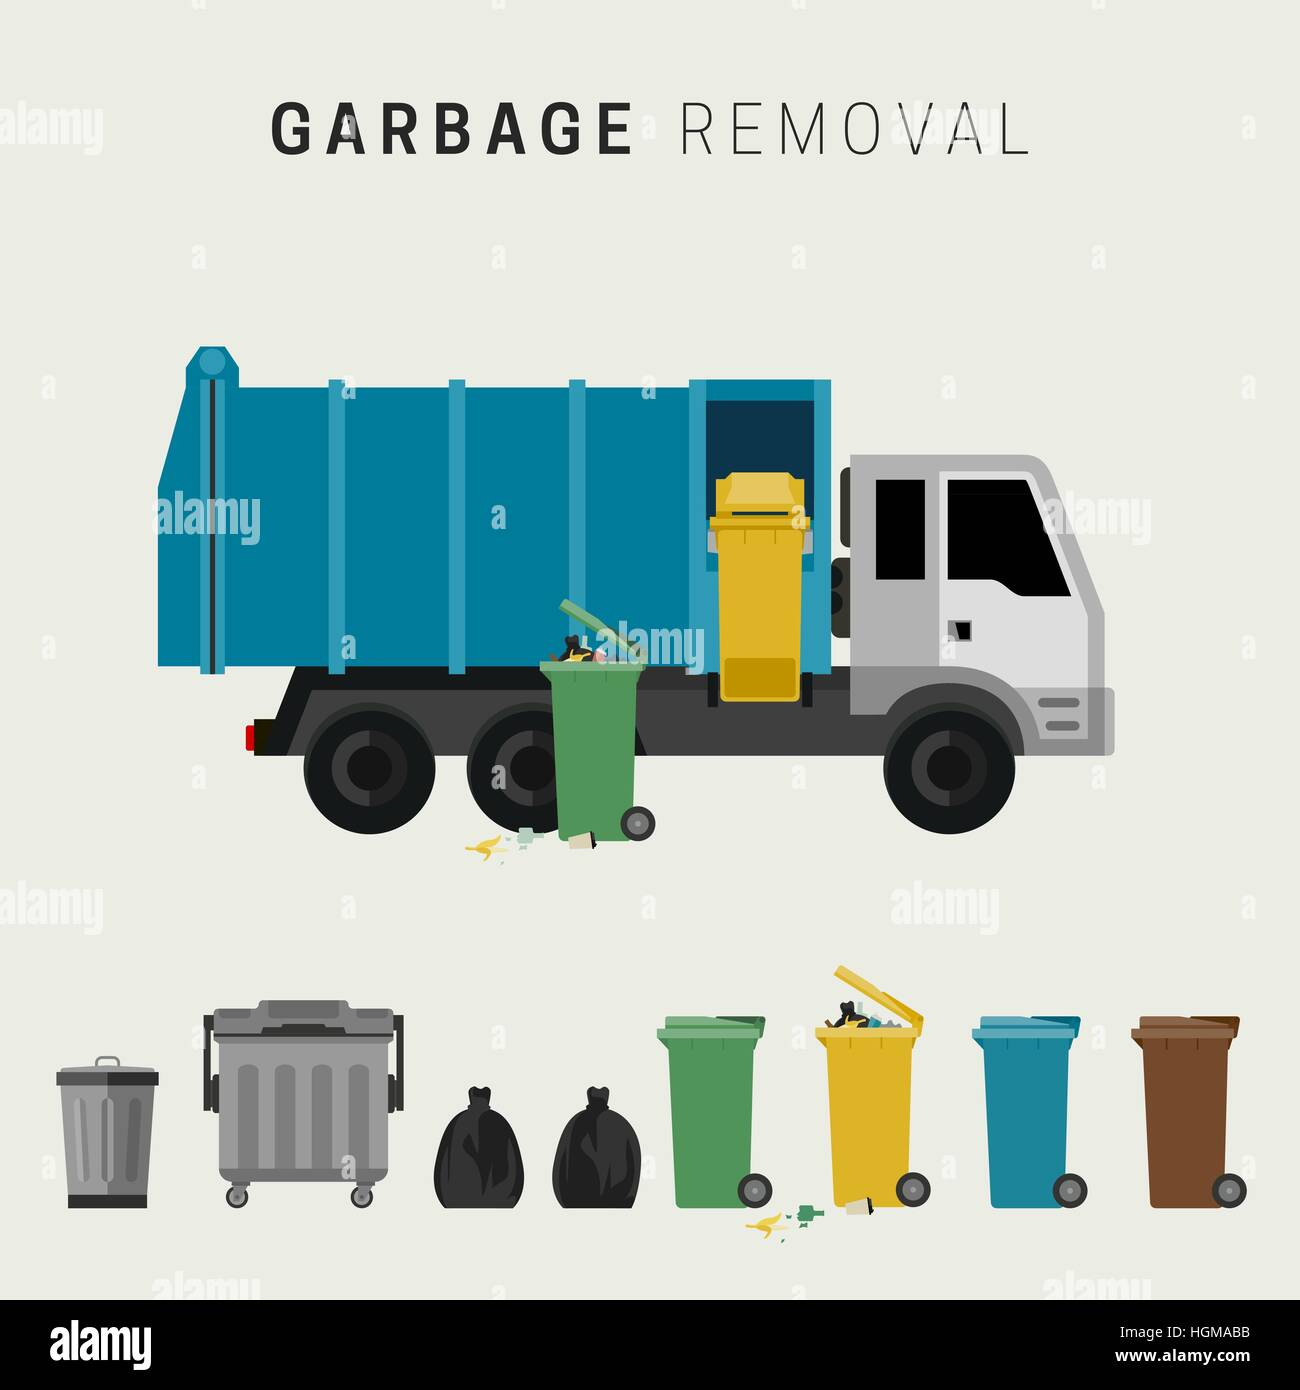 Garbage removal - Stock Vector